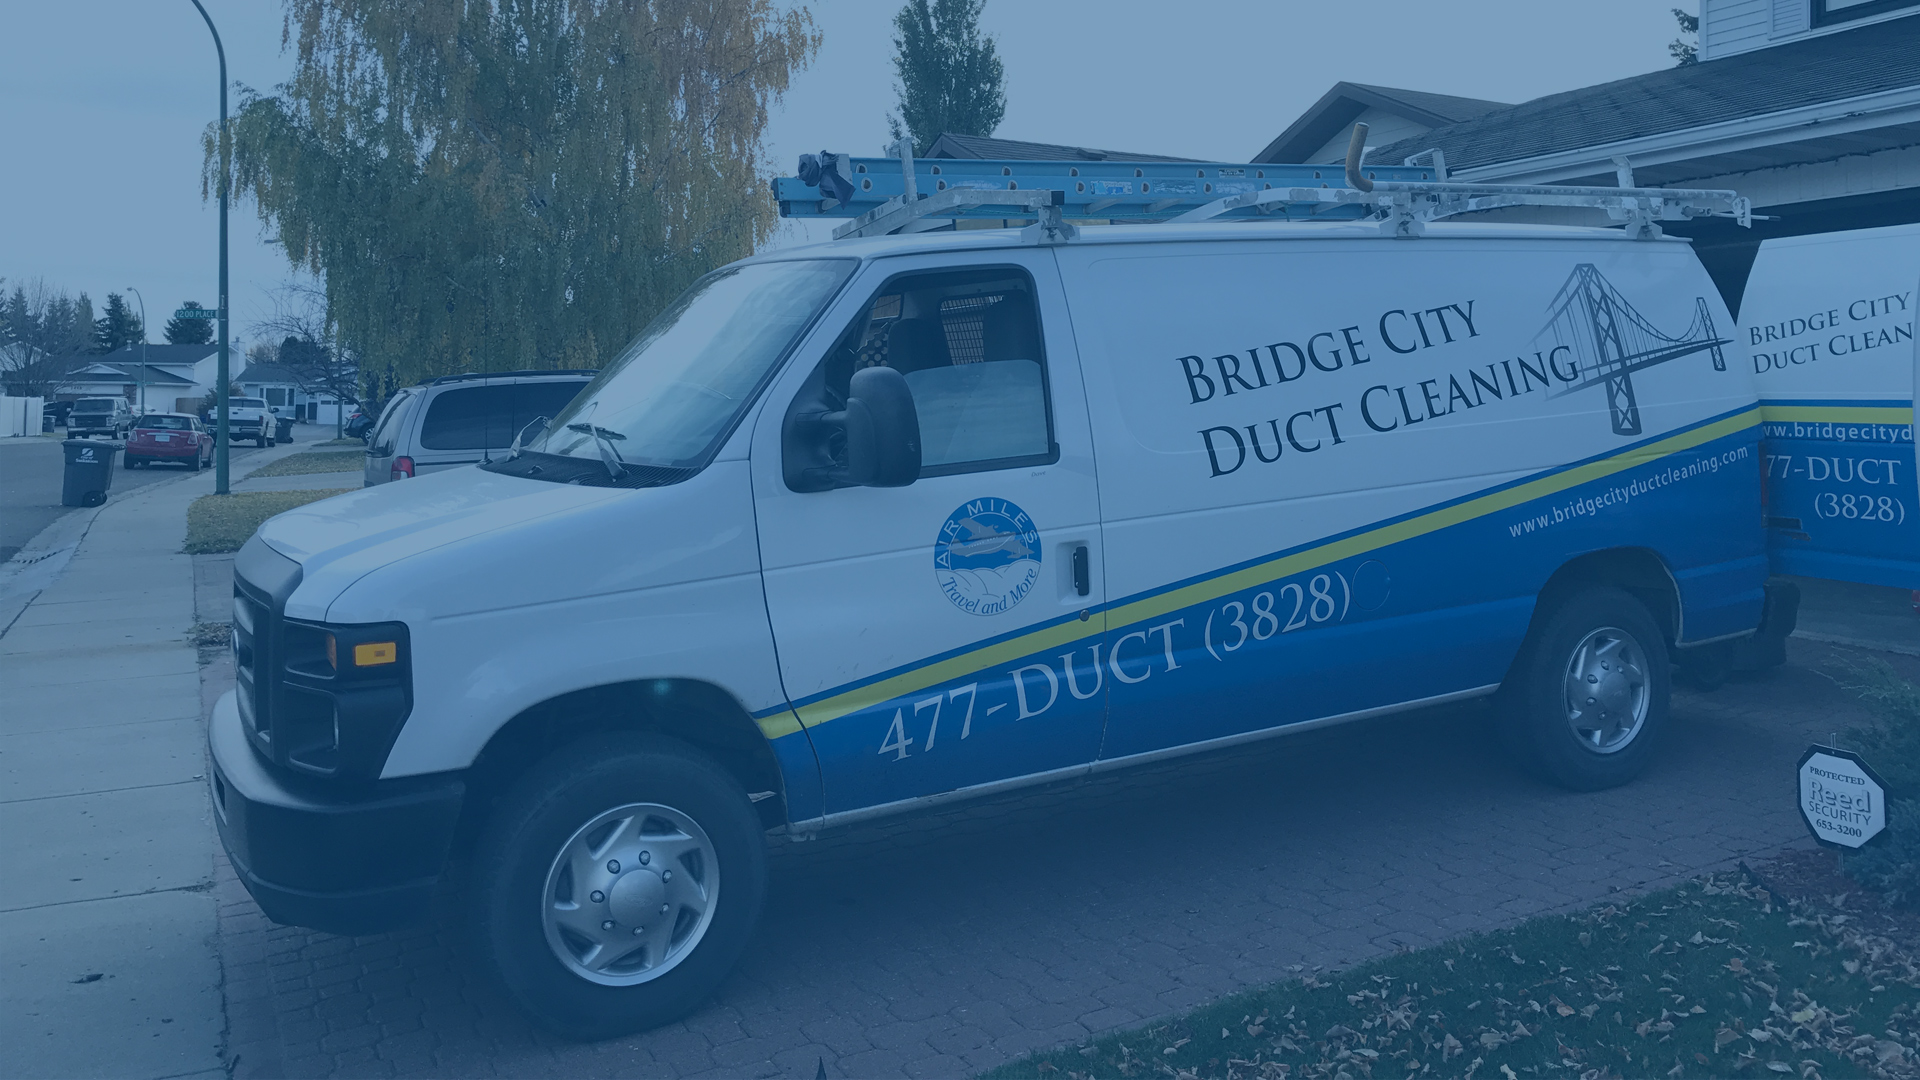 Bridge City Duct Cleaning is a Trusted Saskatoon Duct Cleaning Business